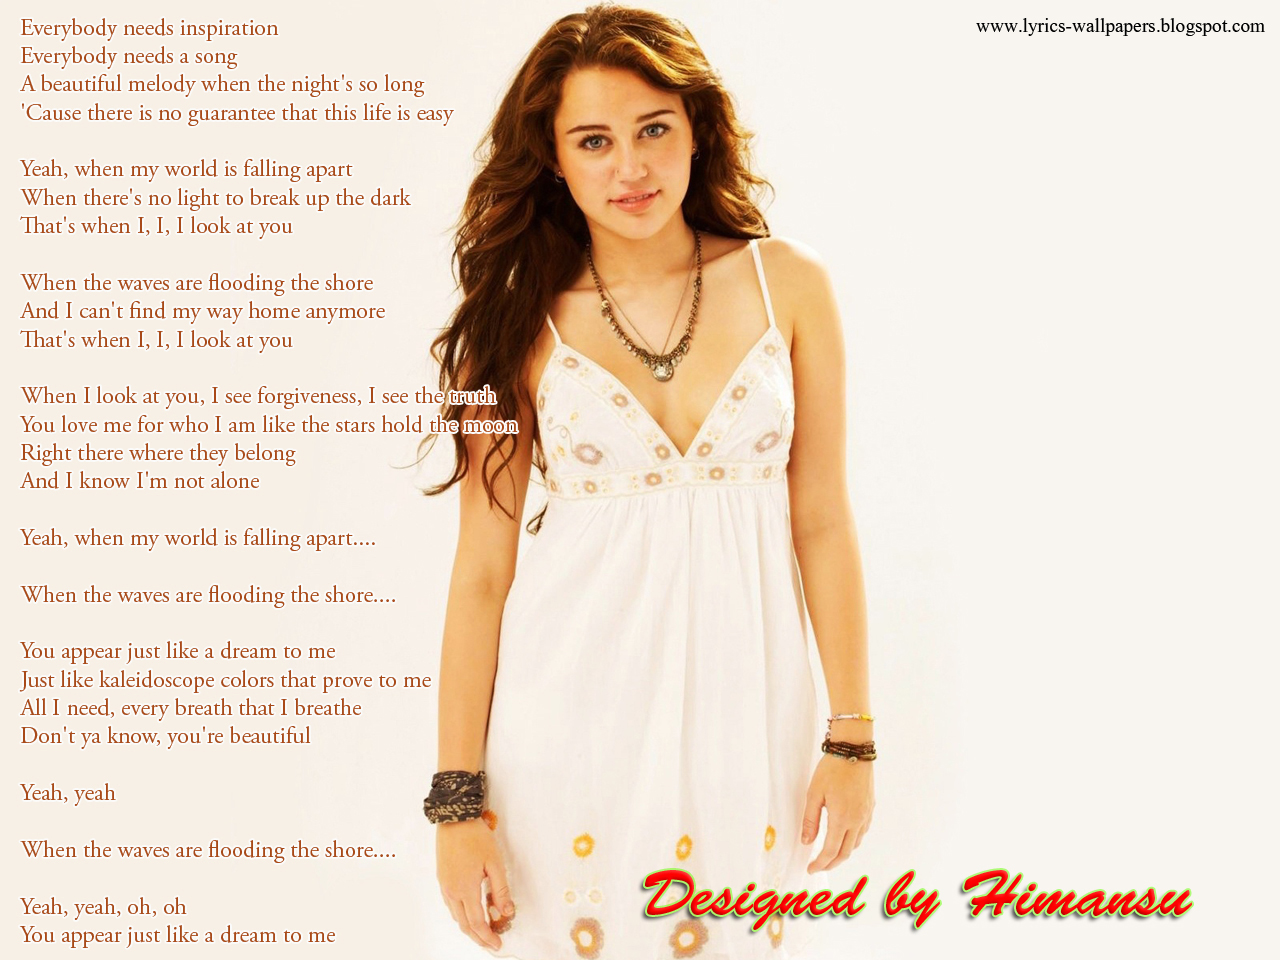 Lyrics Wallpapers Miley Cyrus When I Look At You